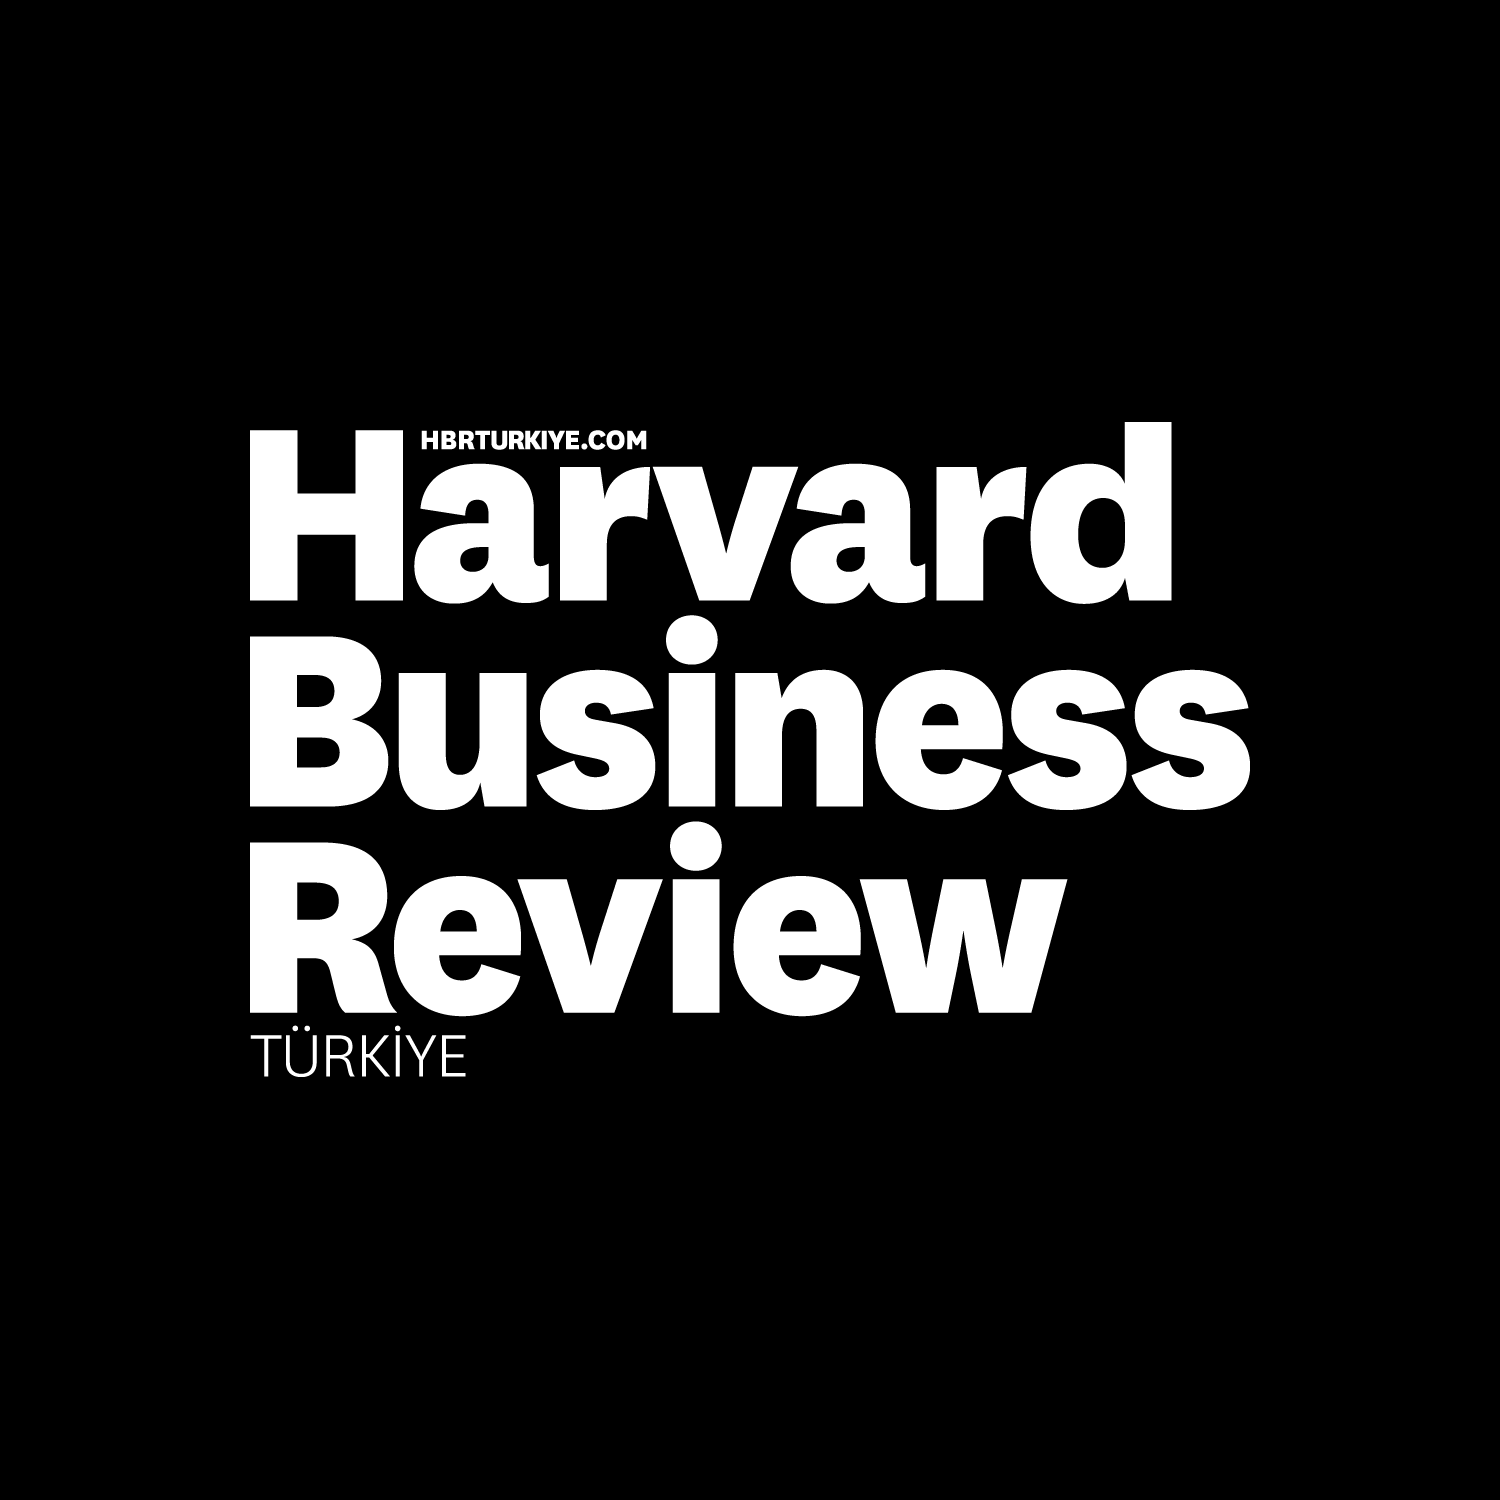 Sorry, that Harvard business review assholes